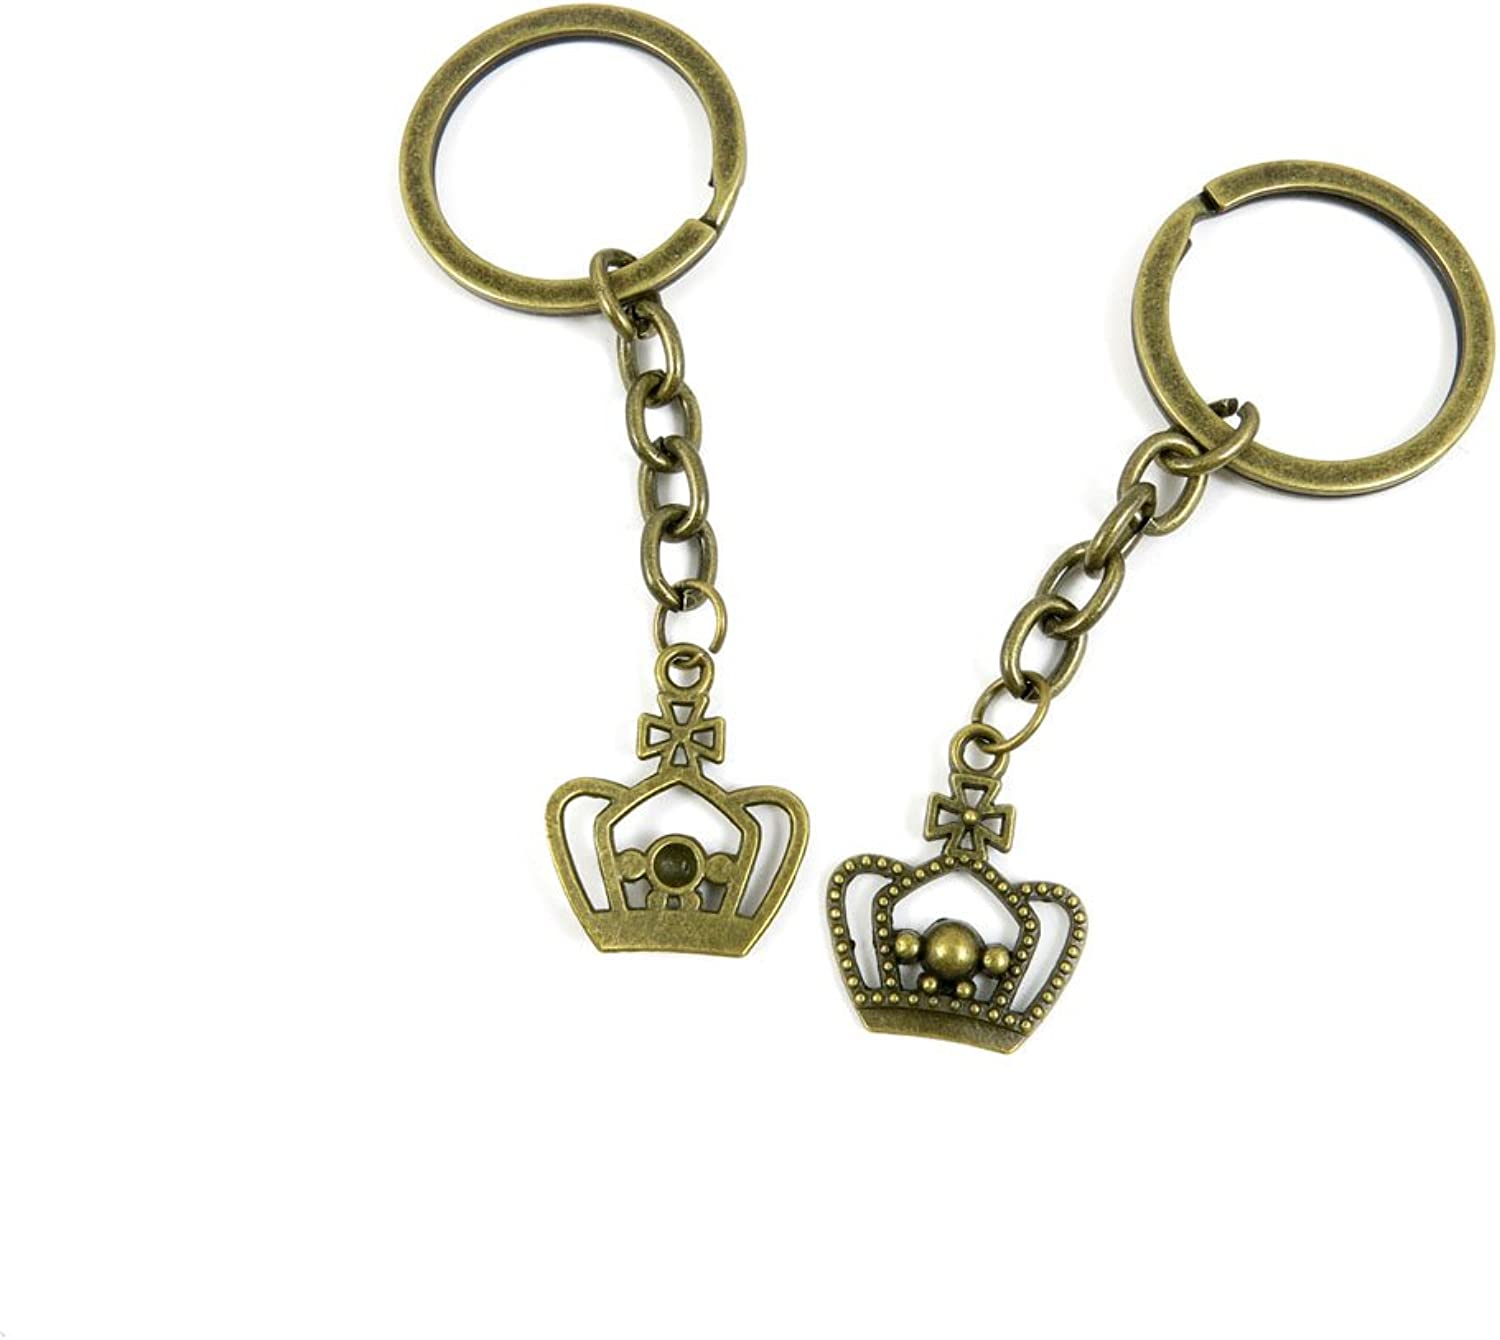 210 Pieces Fashion Jewelry Keyring Keychain Door Car Key Tag Ring Chain Supplier Supply Wholesale Bulk Lots F8TE5 Crown